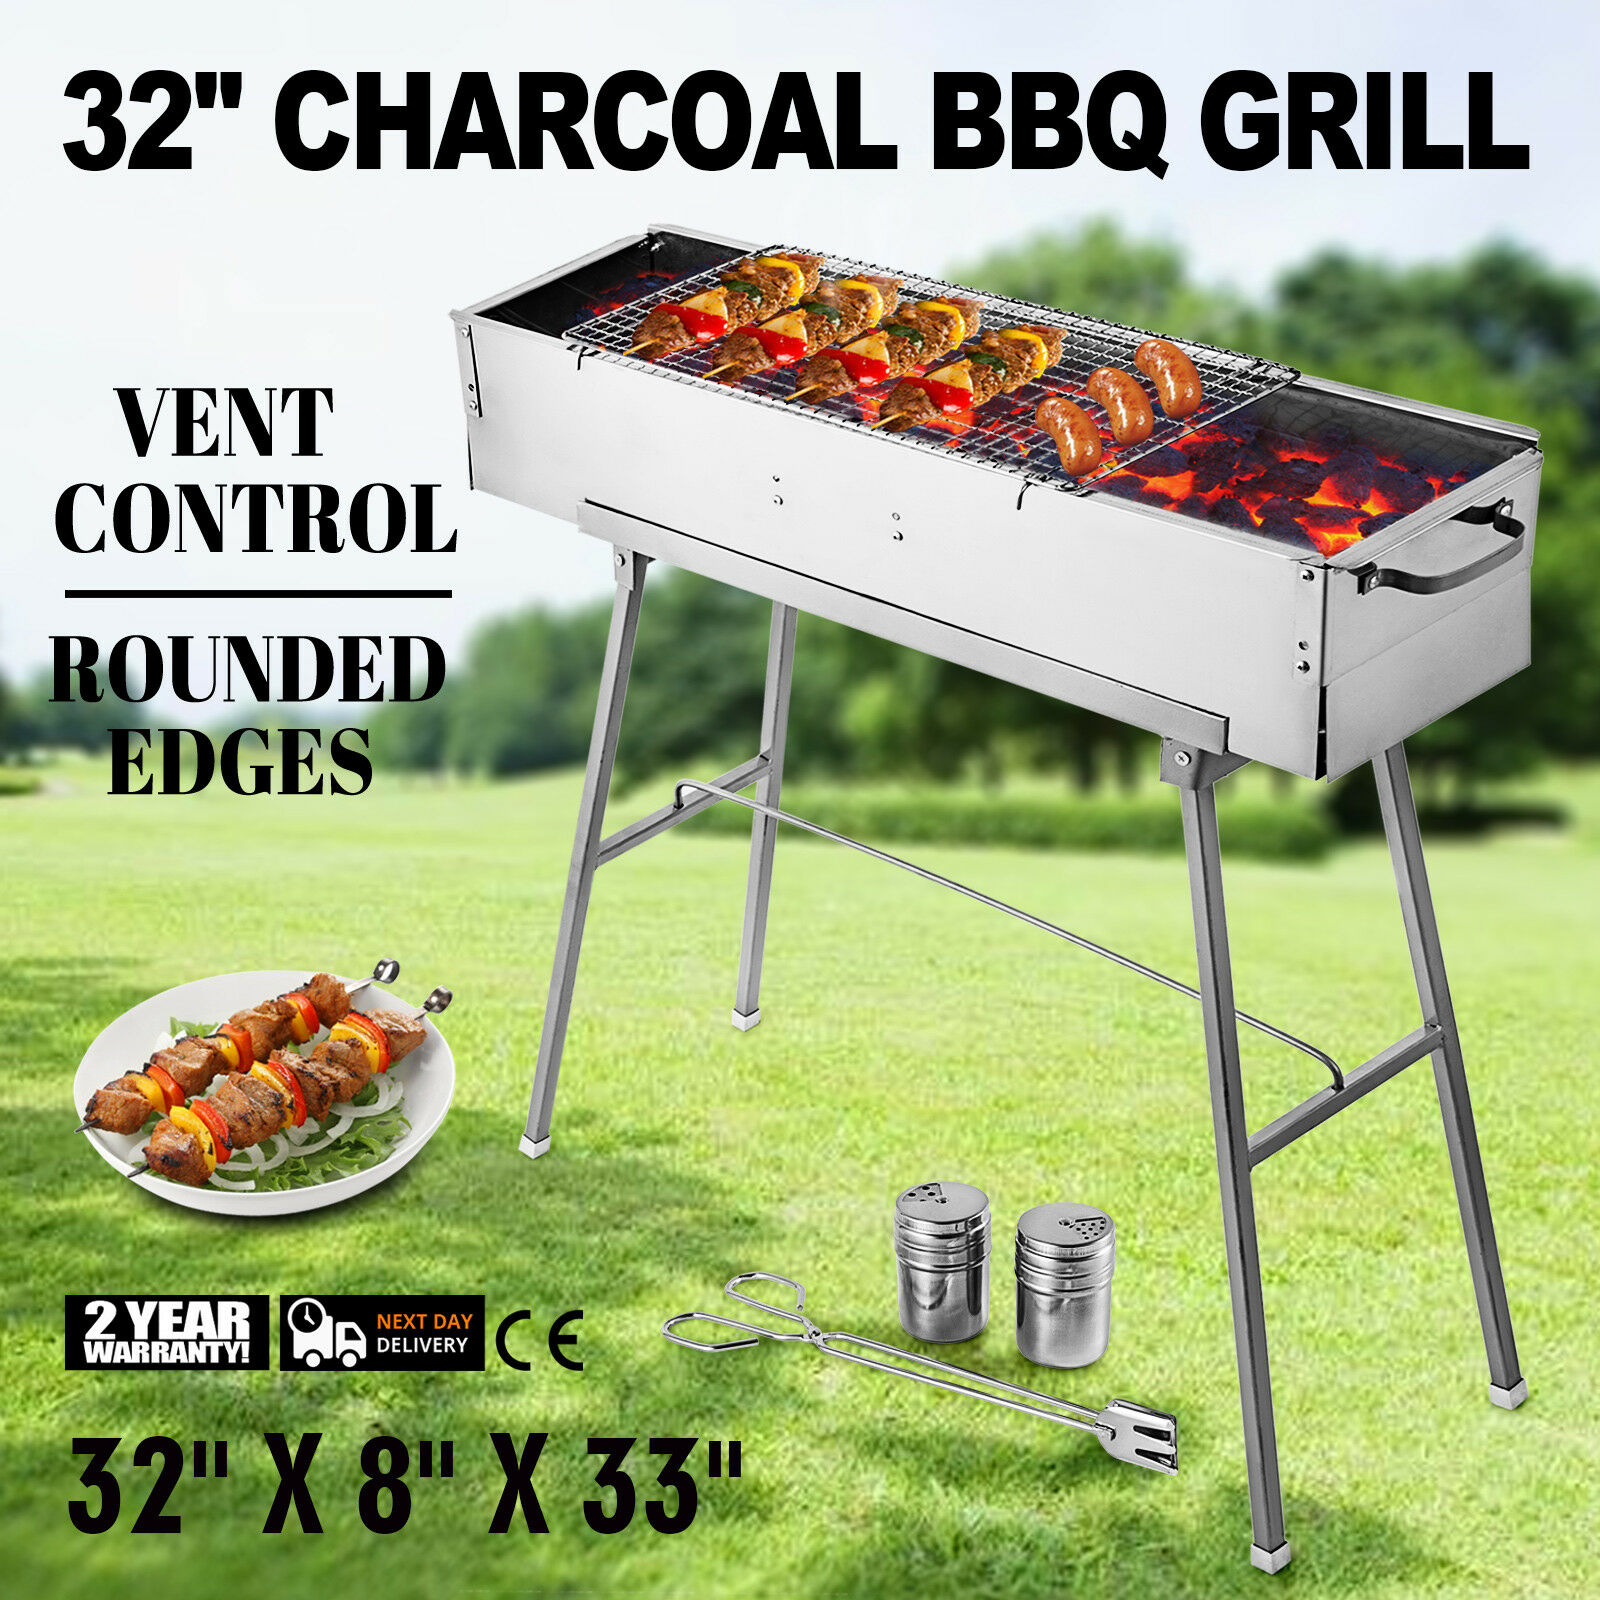 Party Griller 32 Stainless Steel Charcoal Grill Yakitori BBQ Garden Lamb Kebab Stainless Steel Barbecue Gas Grill